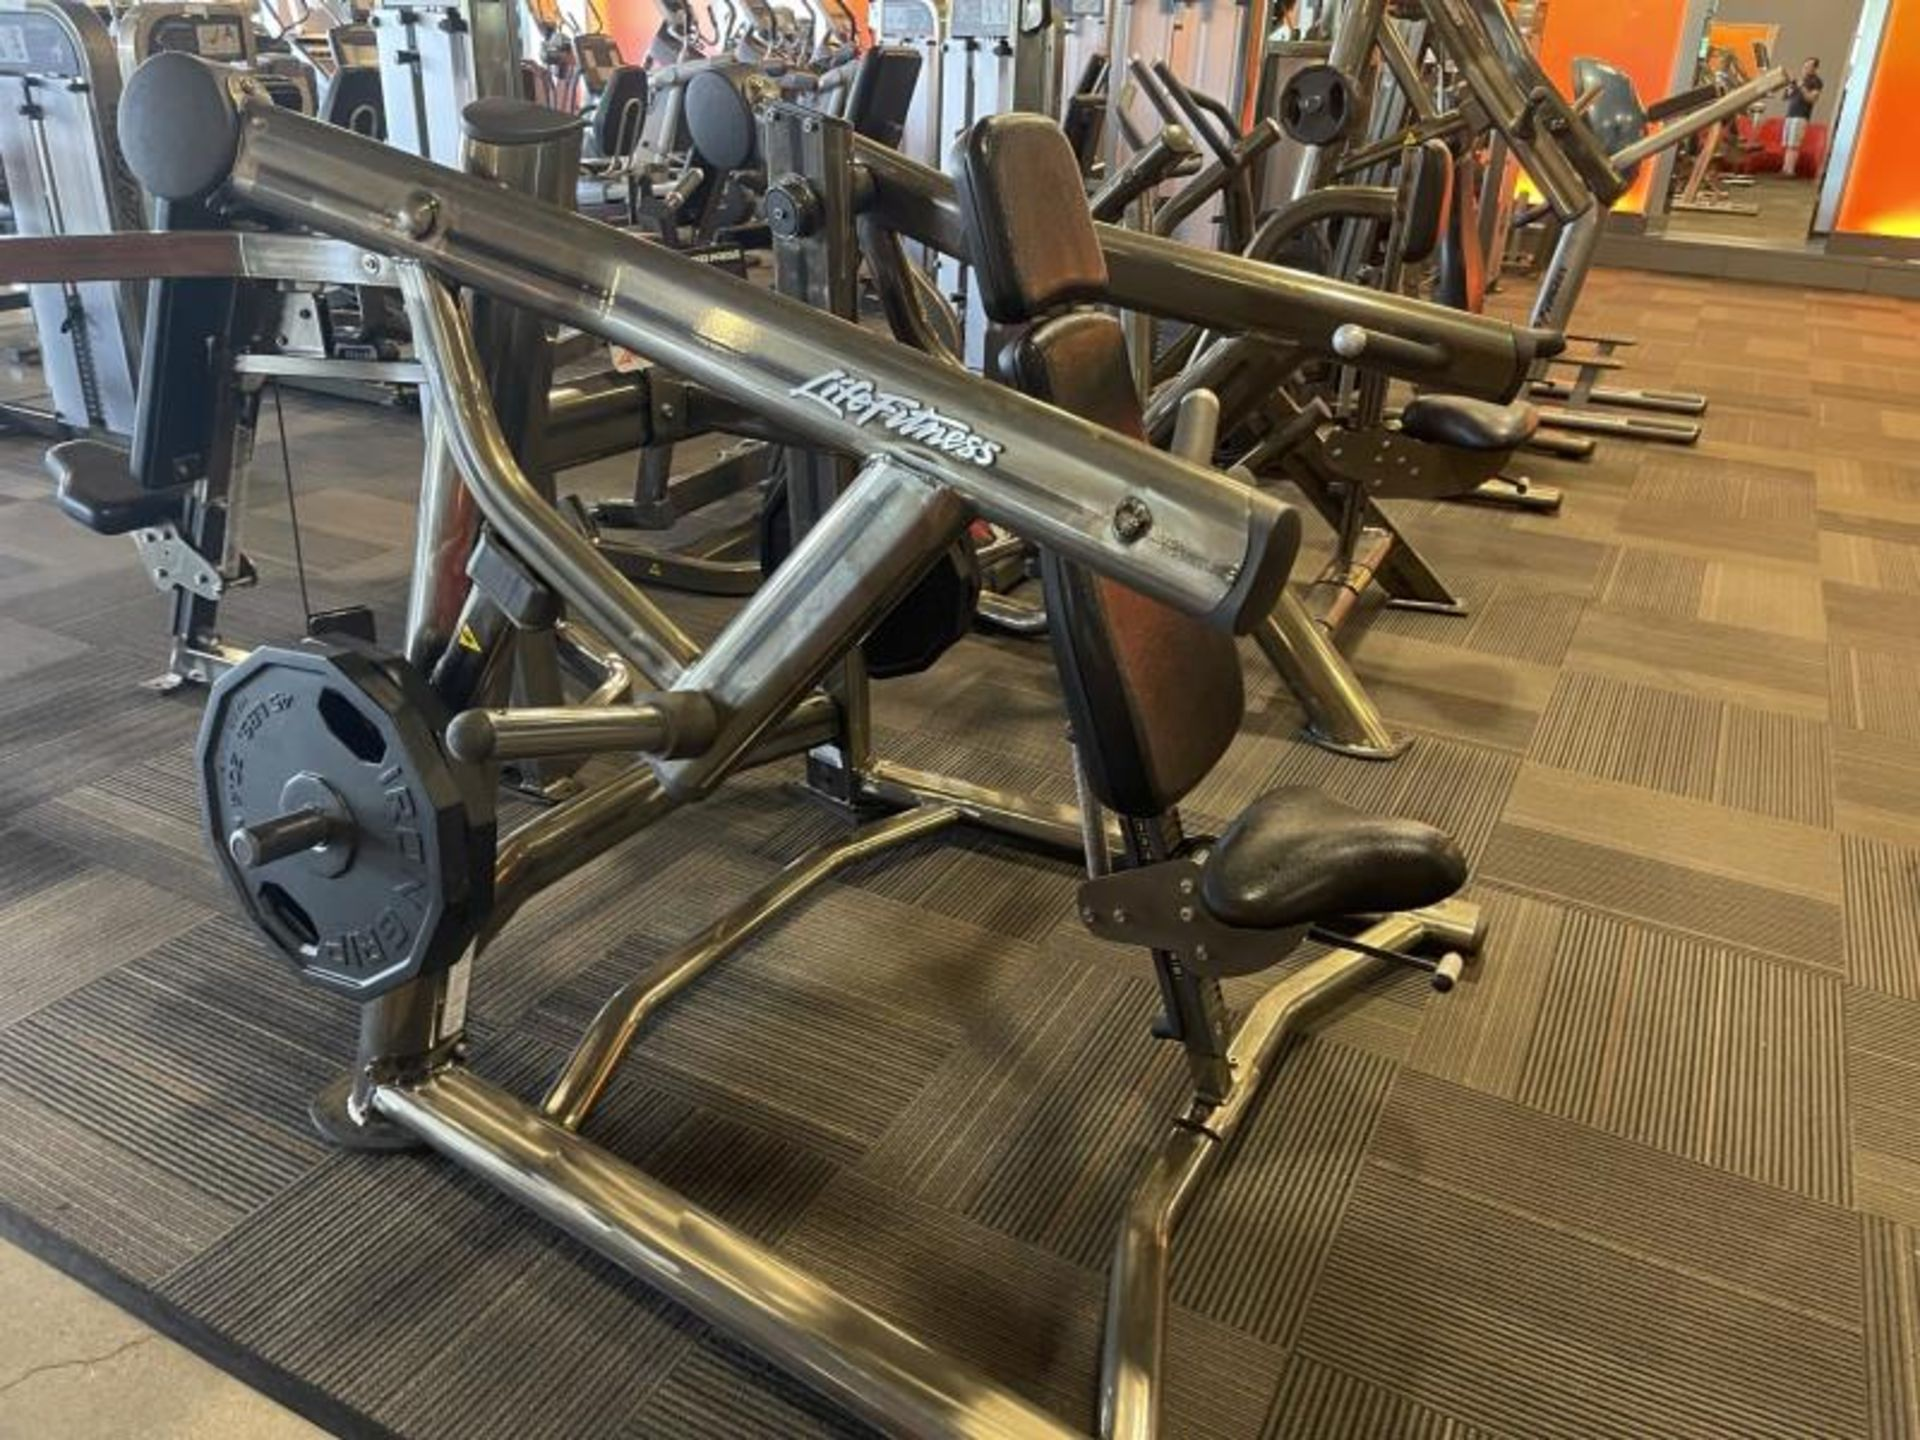 Life Fitness Shoulder Press M: SPLSP with 4 Iron Grip Weight Plates, 45# - Image 2 of 4